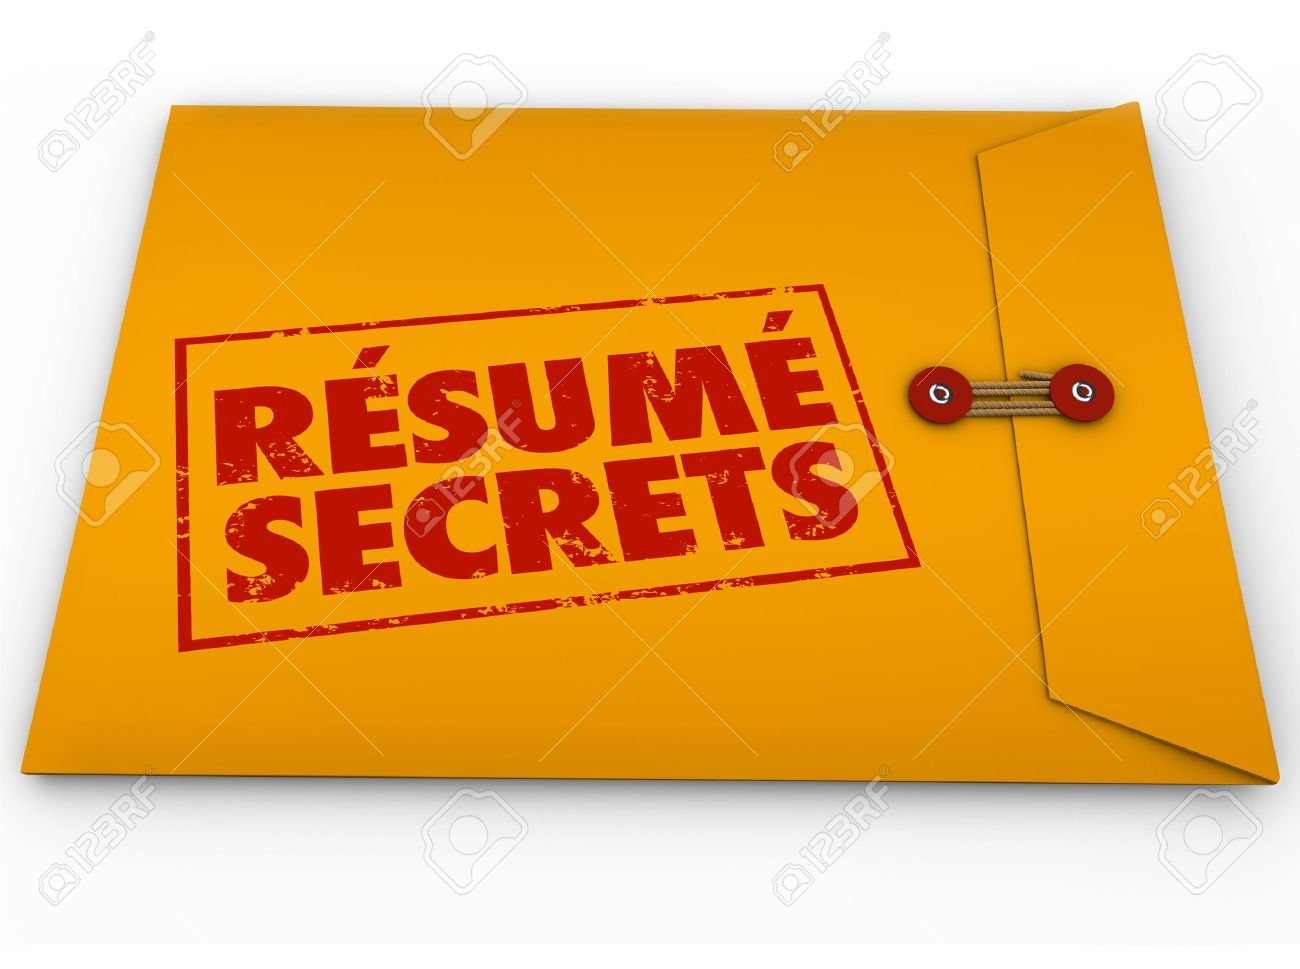 resume secrets words stamped on yellow envelope to illustrate